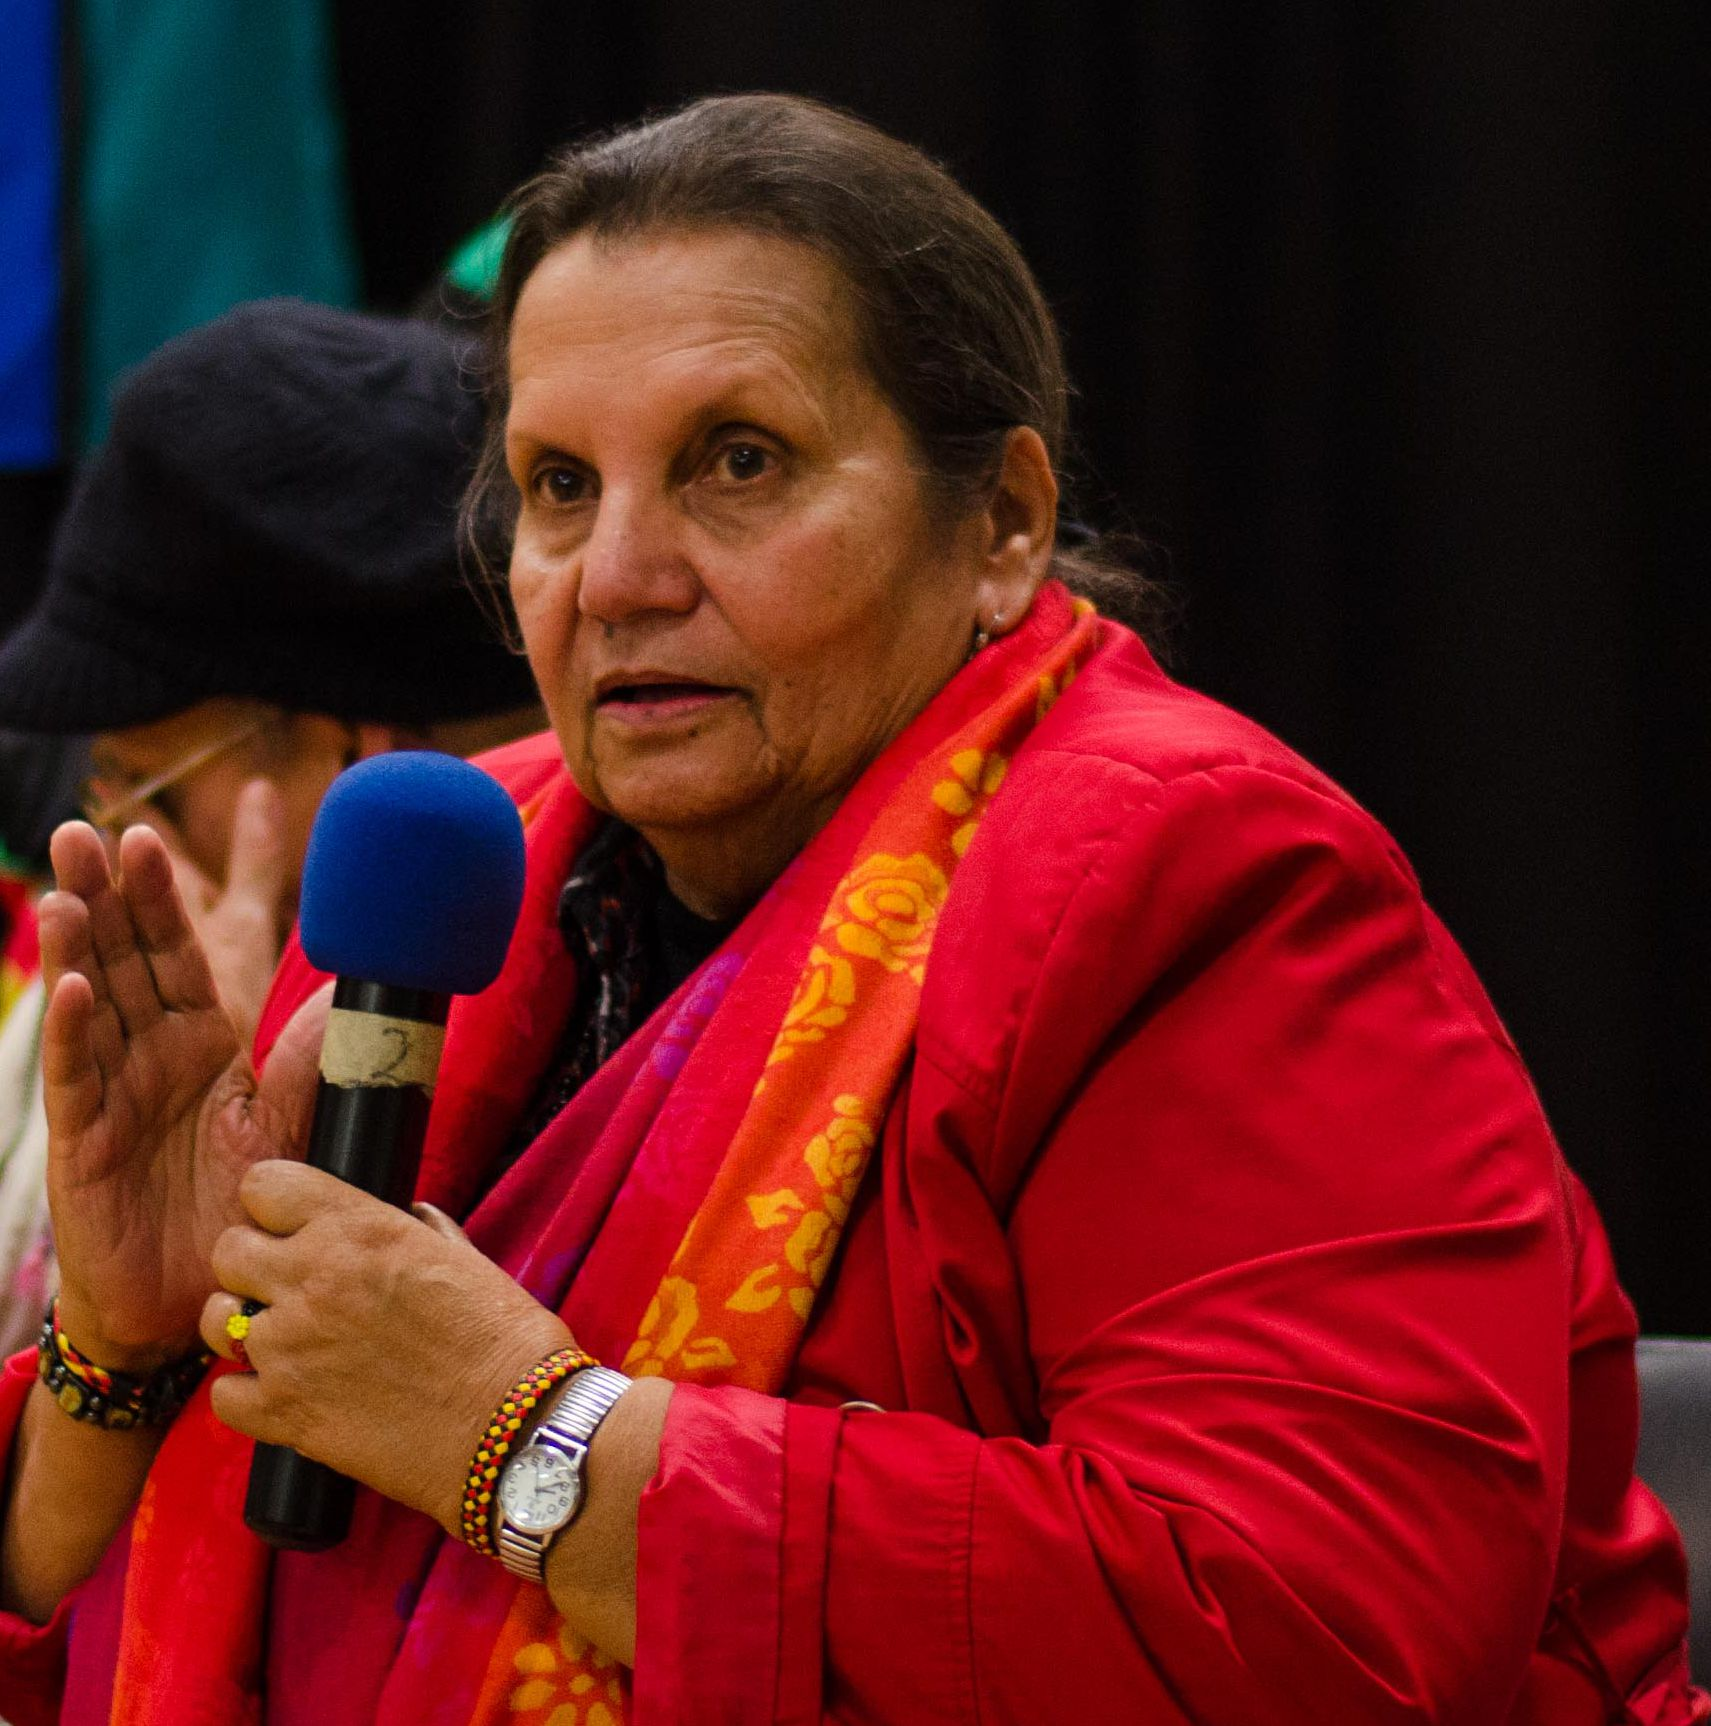 - Aunty Pearl Wymarra, Gudang Elder from Cape York Peninsula, Queensland, graduated from Nepean College of Advanced Education (now UWS Penrith Campus) with a Diploma of Primary Teaching in 1980. She completed a Masters in Health Science (Primary Health Care) writing a thesis entitled Recreating Home in 2001. Member of the Community Justice Coalition and the Throughcare Jigsaw Group working with prisoners, inmates and their families.